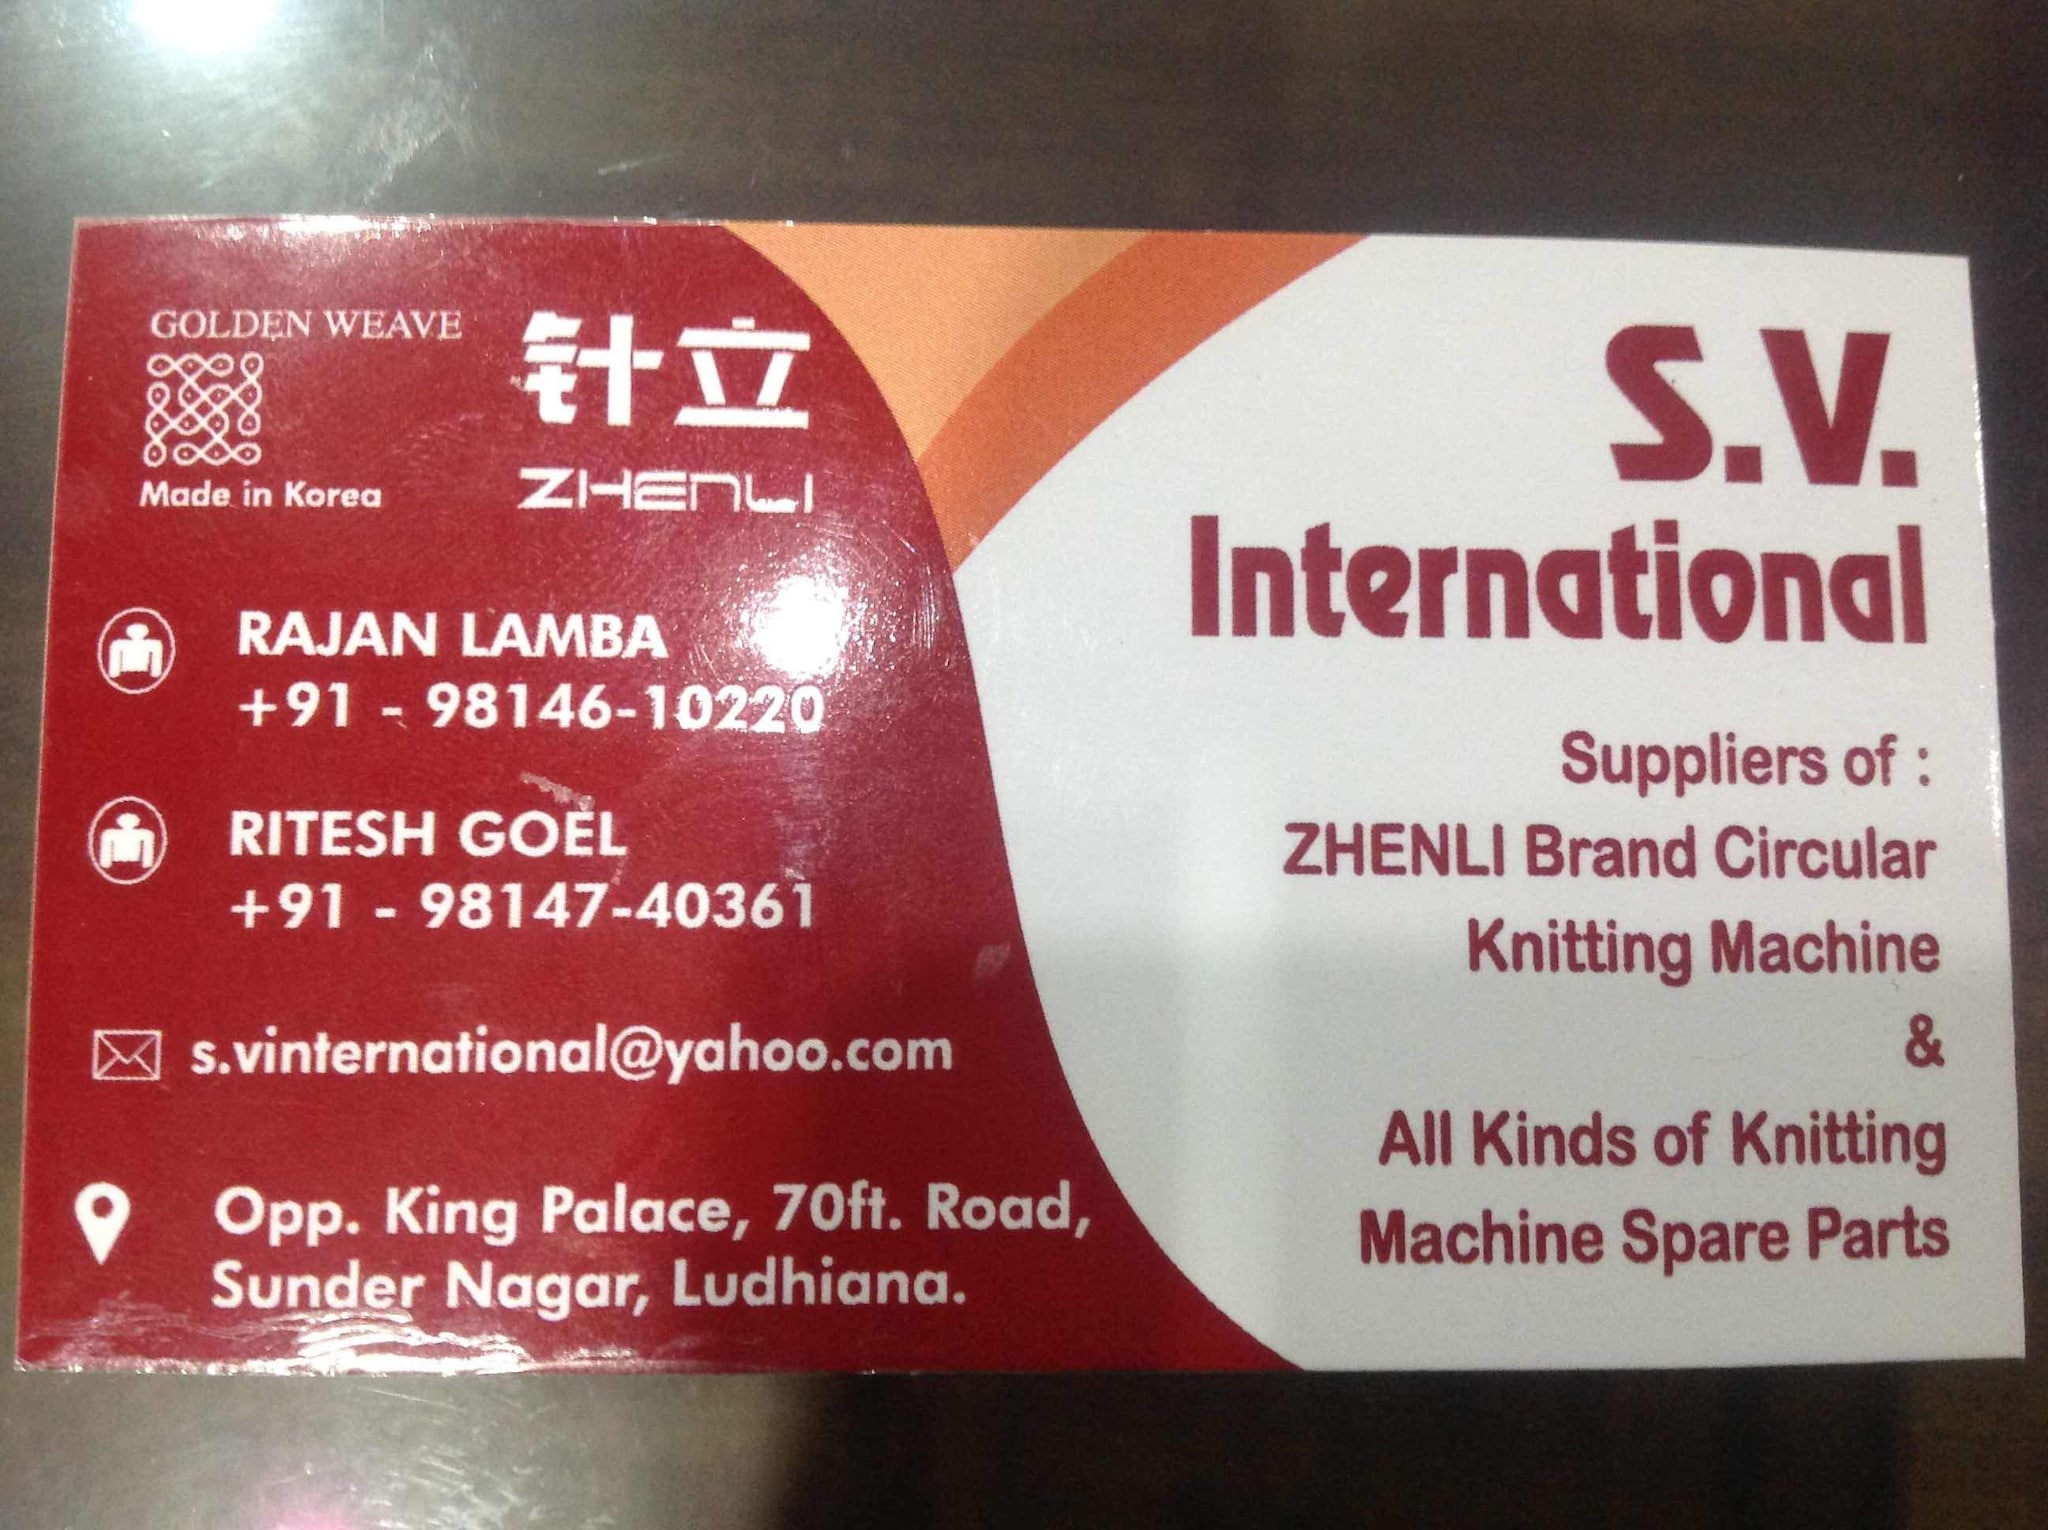 Top Circular Knitting Machine Part Dealers In Ludhiana Central